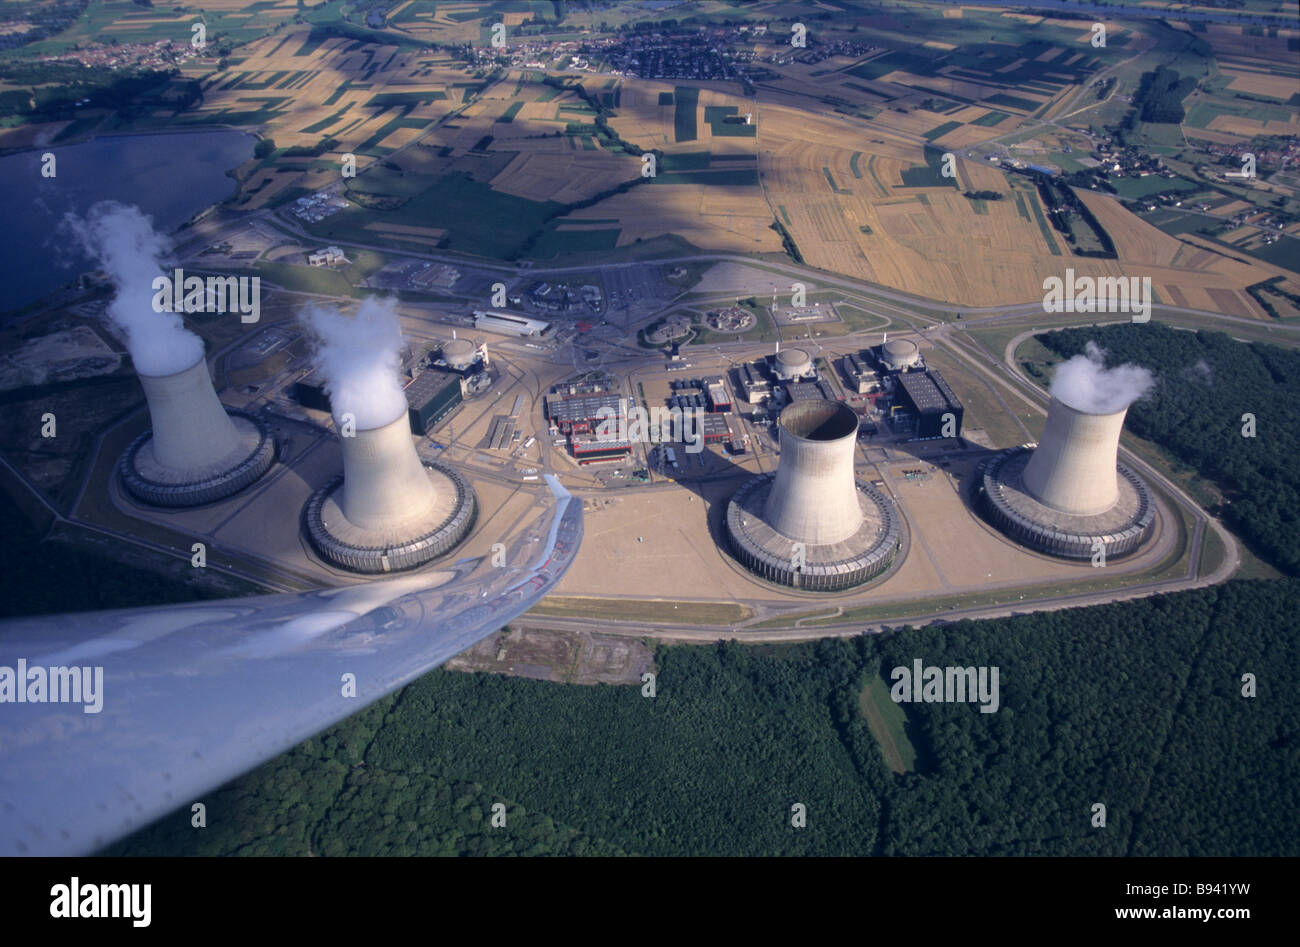 Overview of nuclear power plants at Catenom - France - Stock Image